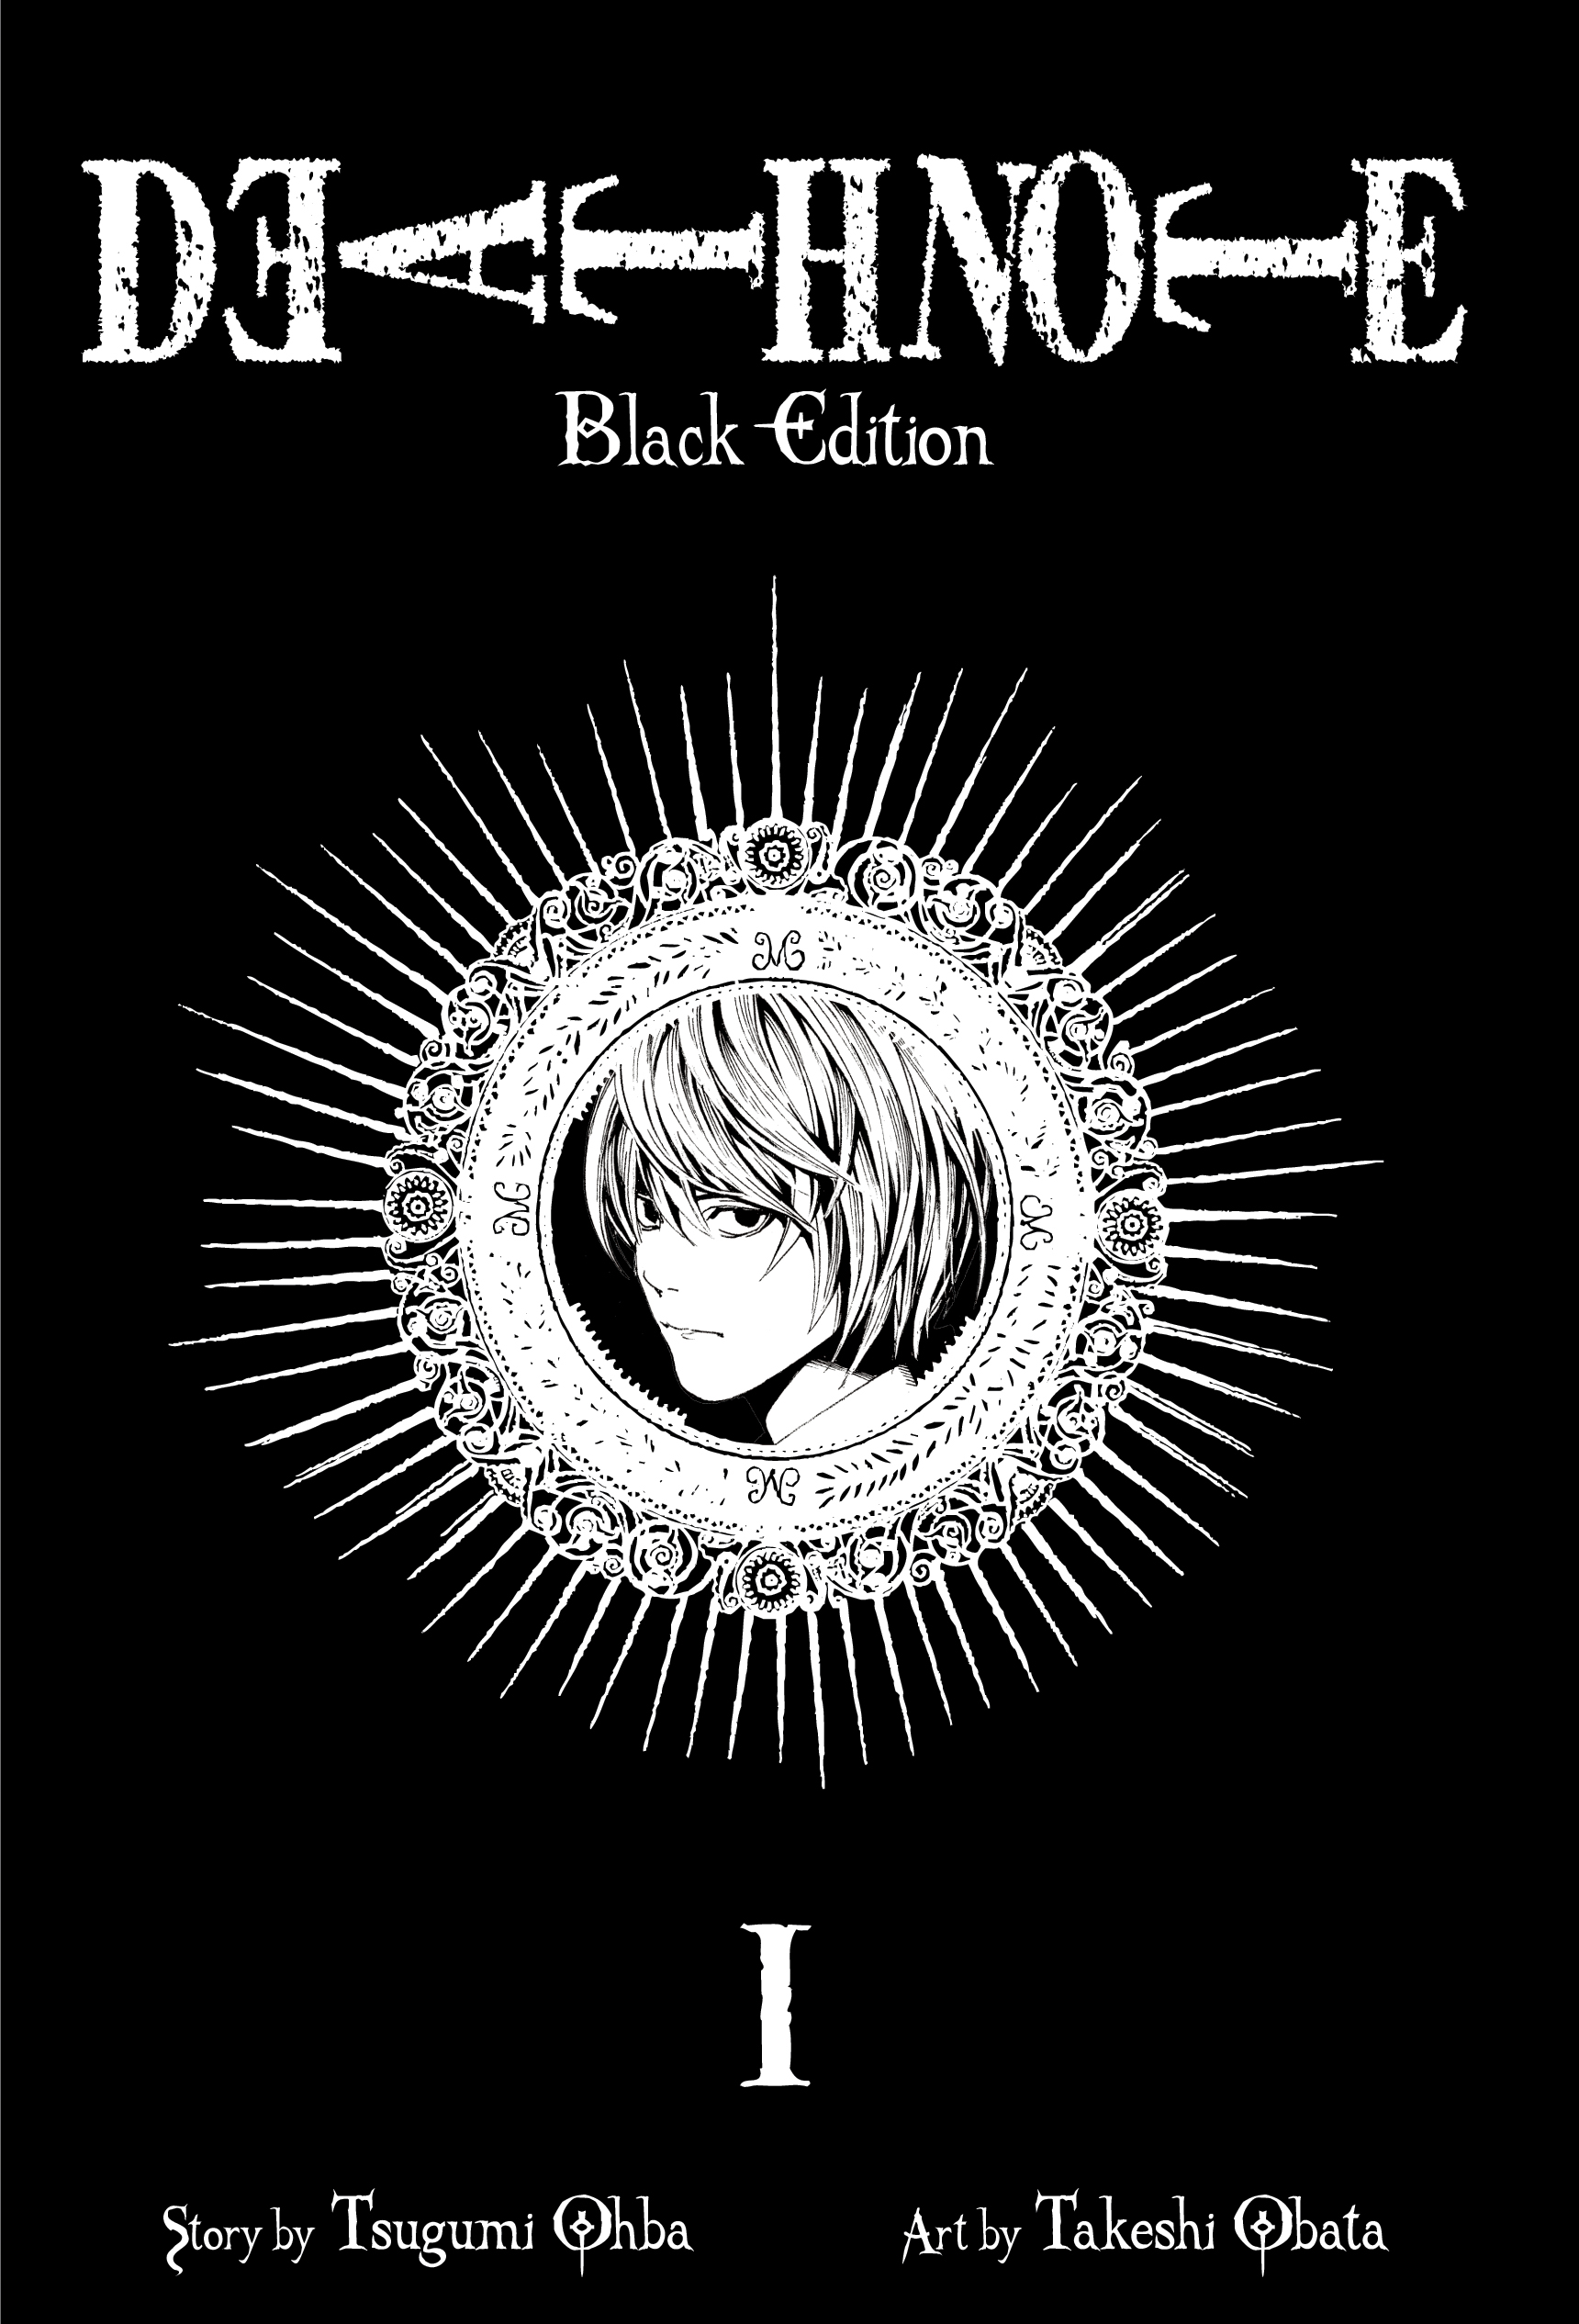 Death Note Black Edition, Vol. 1 | Book by Tsugumi Ohba ...